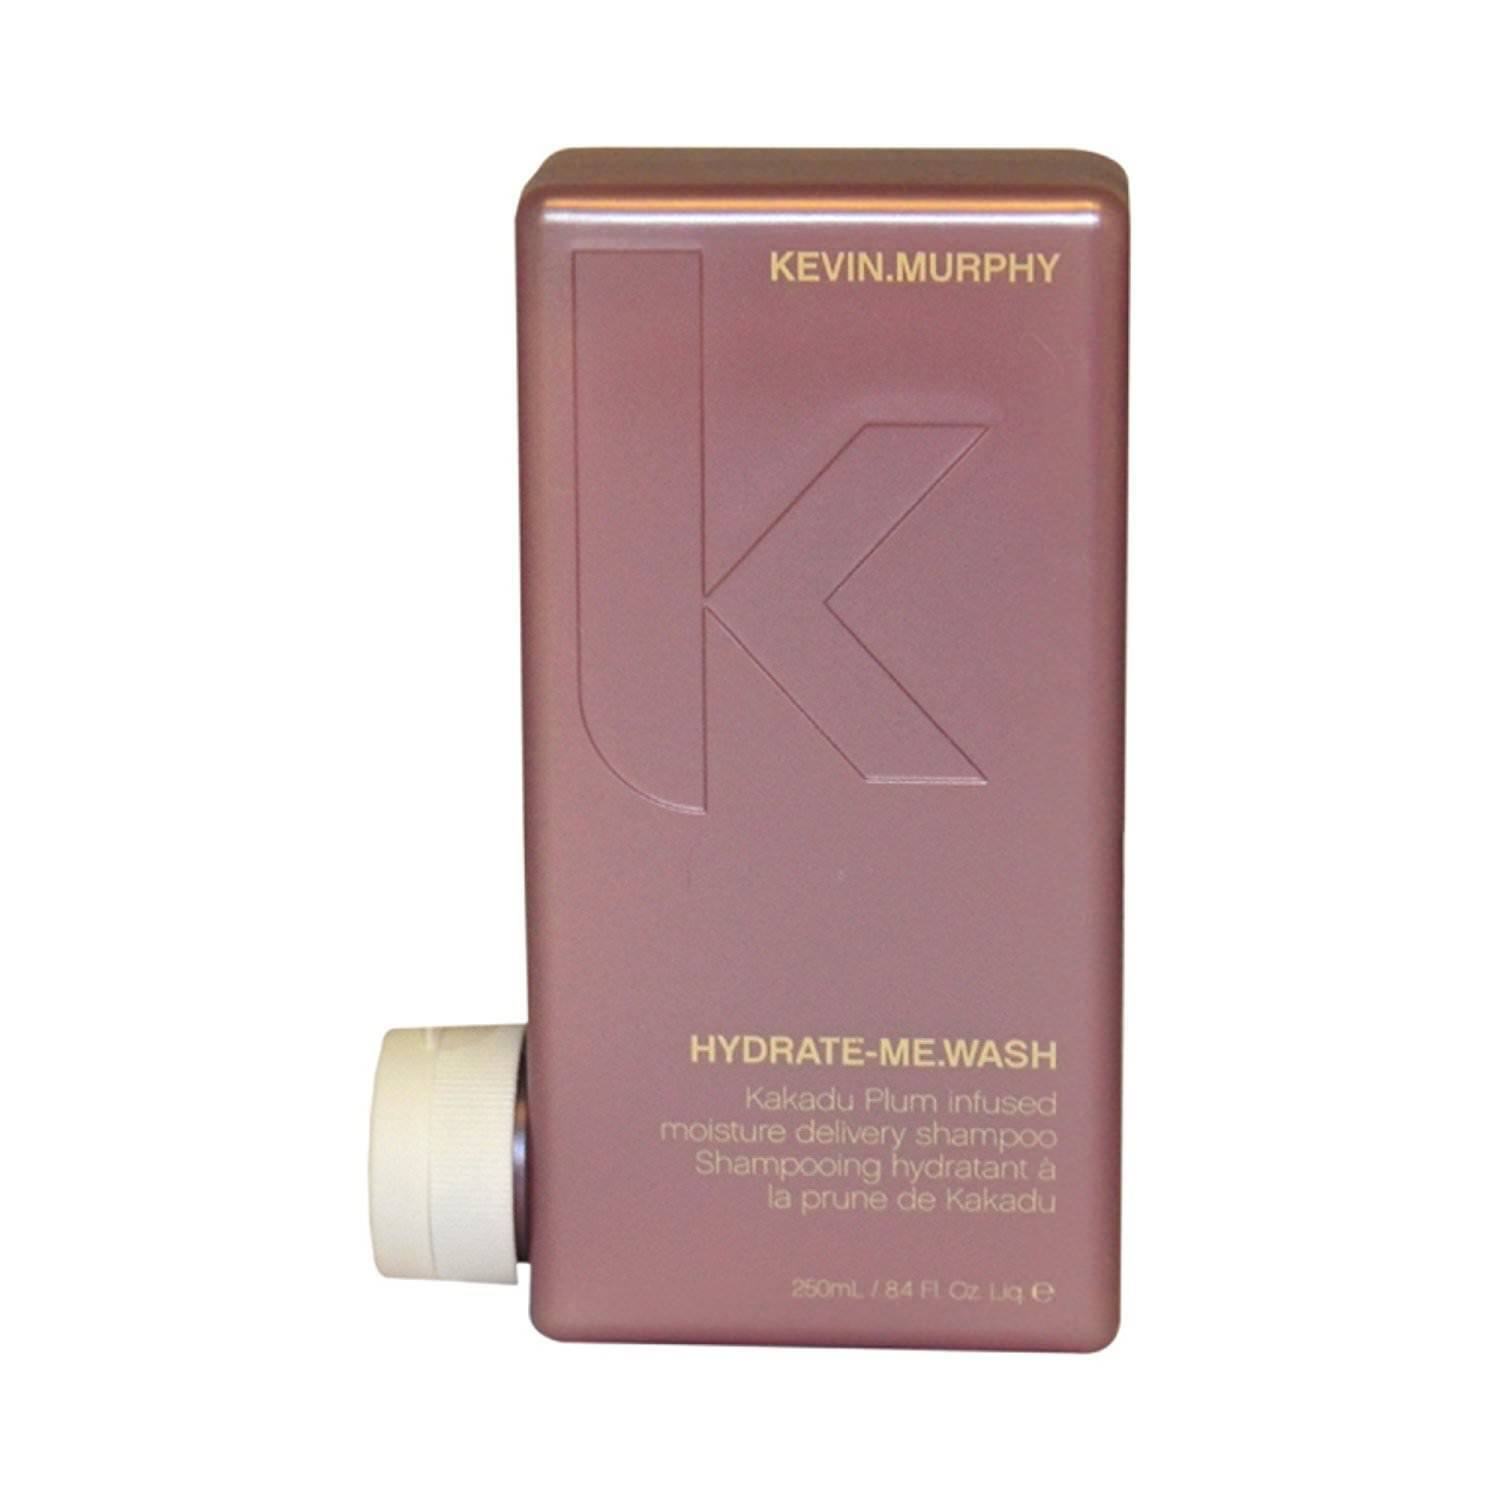 KEVIN MURPHY by Kevin Murphy HYDRATE-ME WASH 8.4 OZ for UNIS